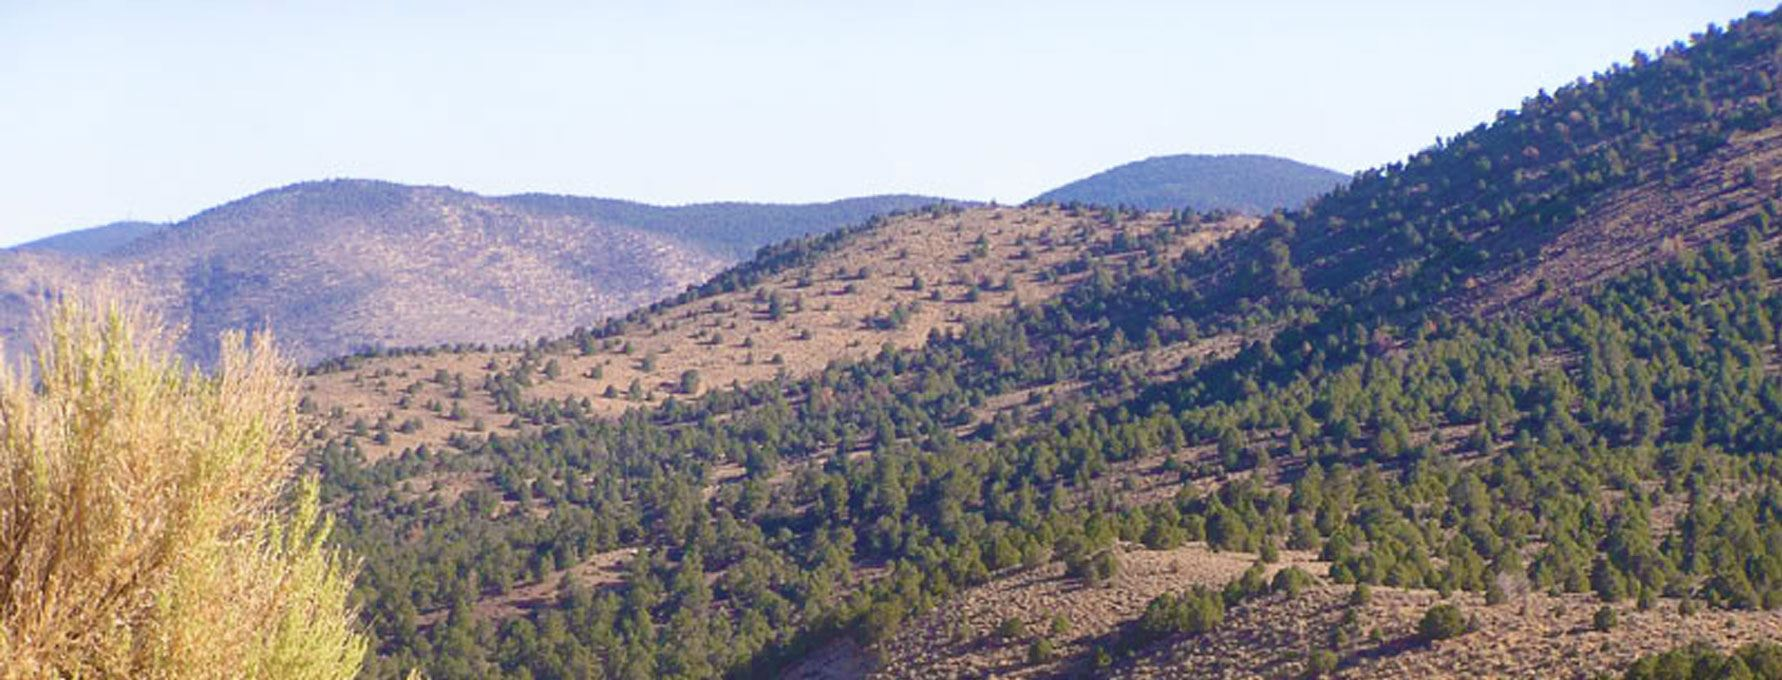 Lyon County, NV - Official Website   Official Website